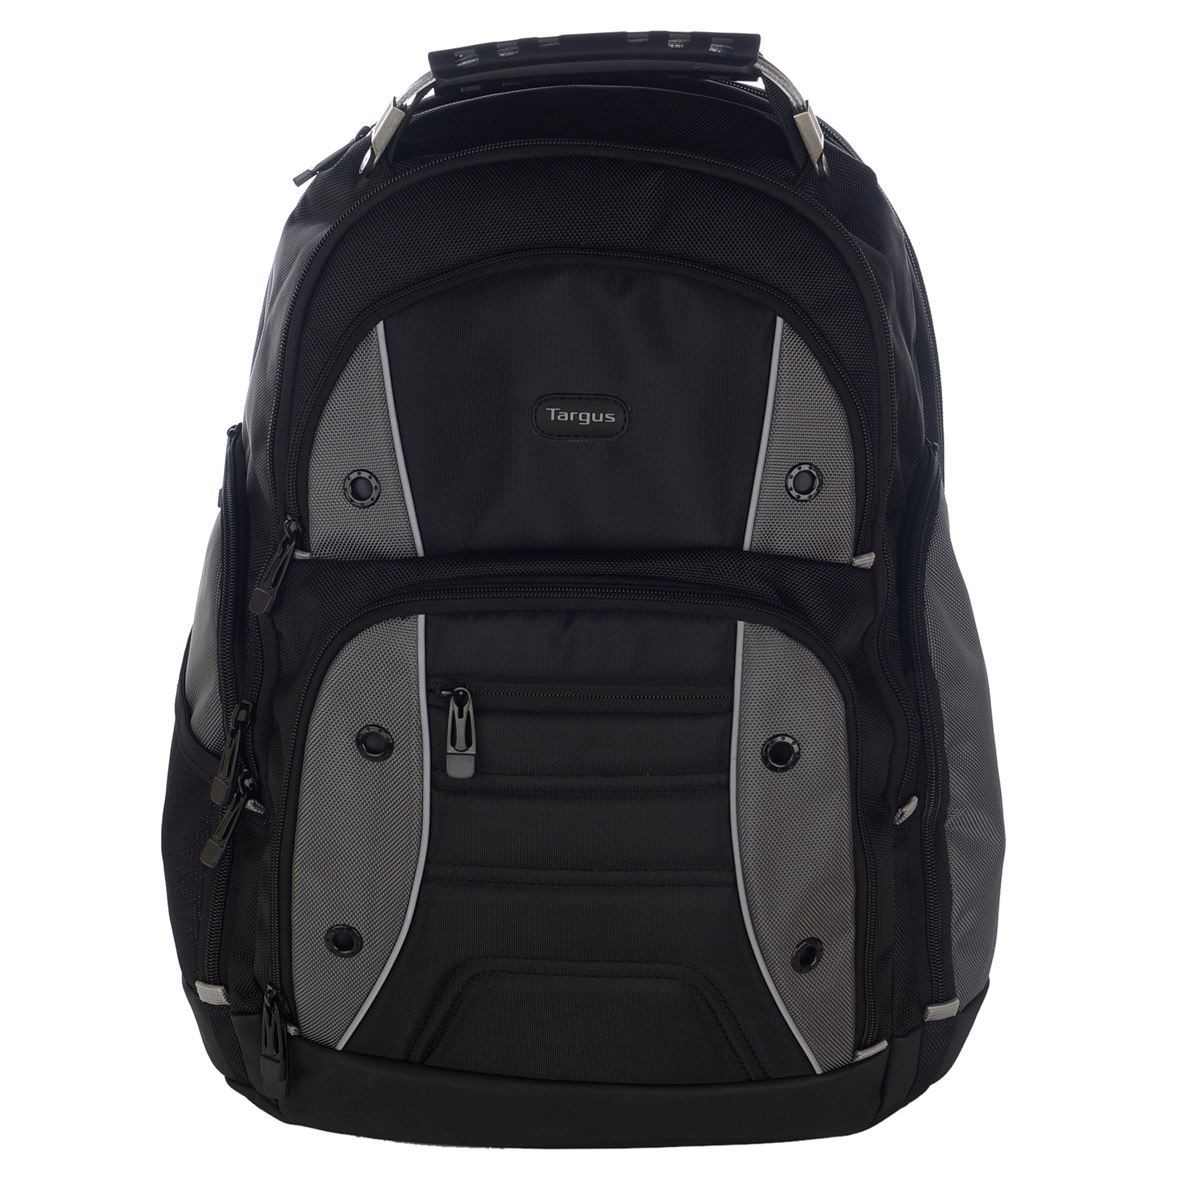 Targus Drifter 17 Laptop Backpack Black/Grey